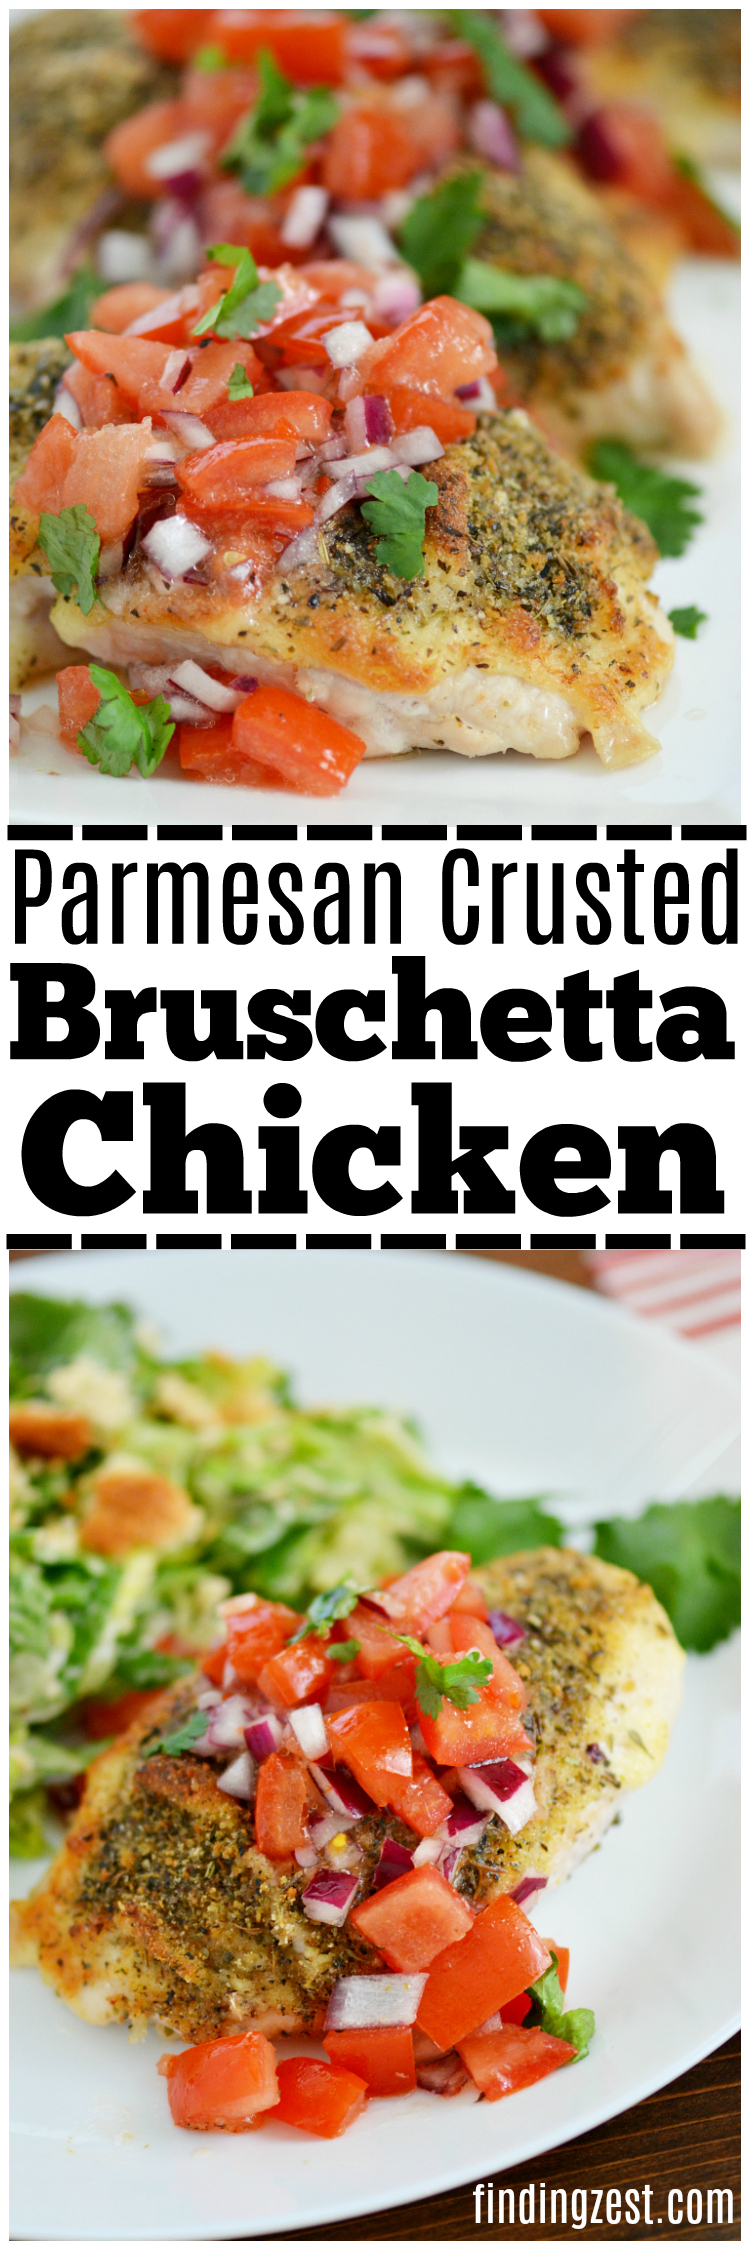 This delicious Parmesan Crusted Bruschetta Chicken recipe is a quick and easy weeknight dinner on your table in under 30 minutes! The whole family will love it, even kids!